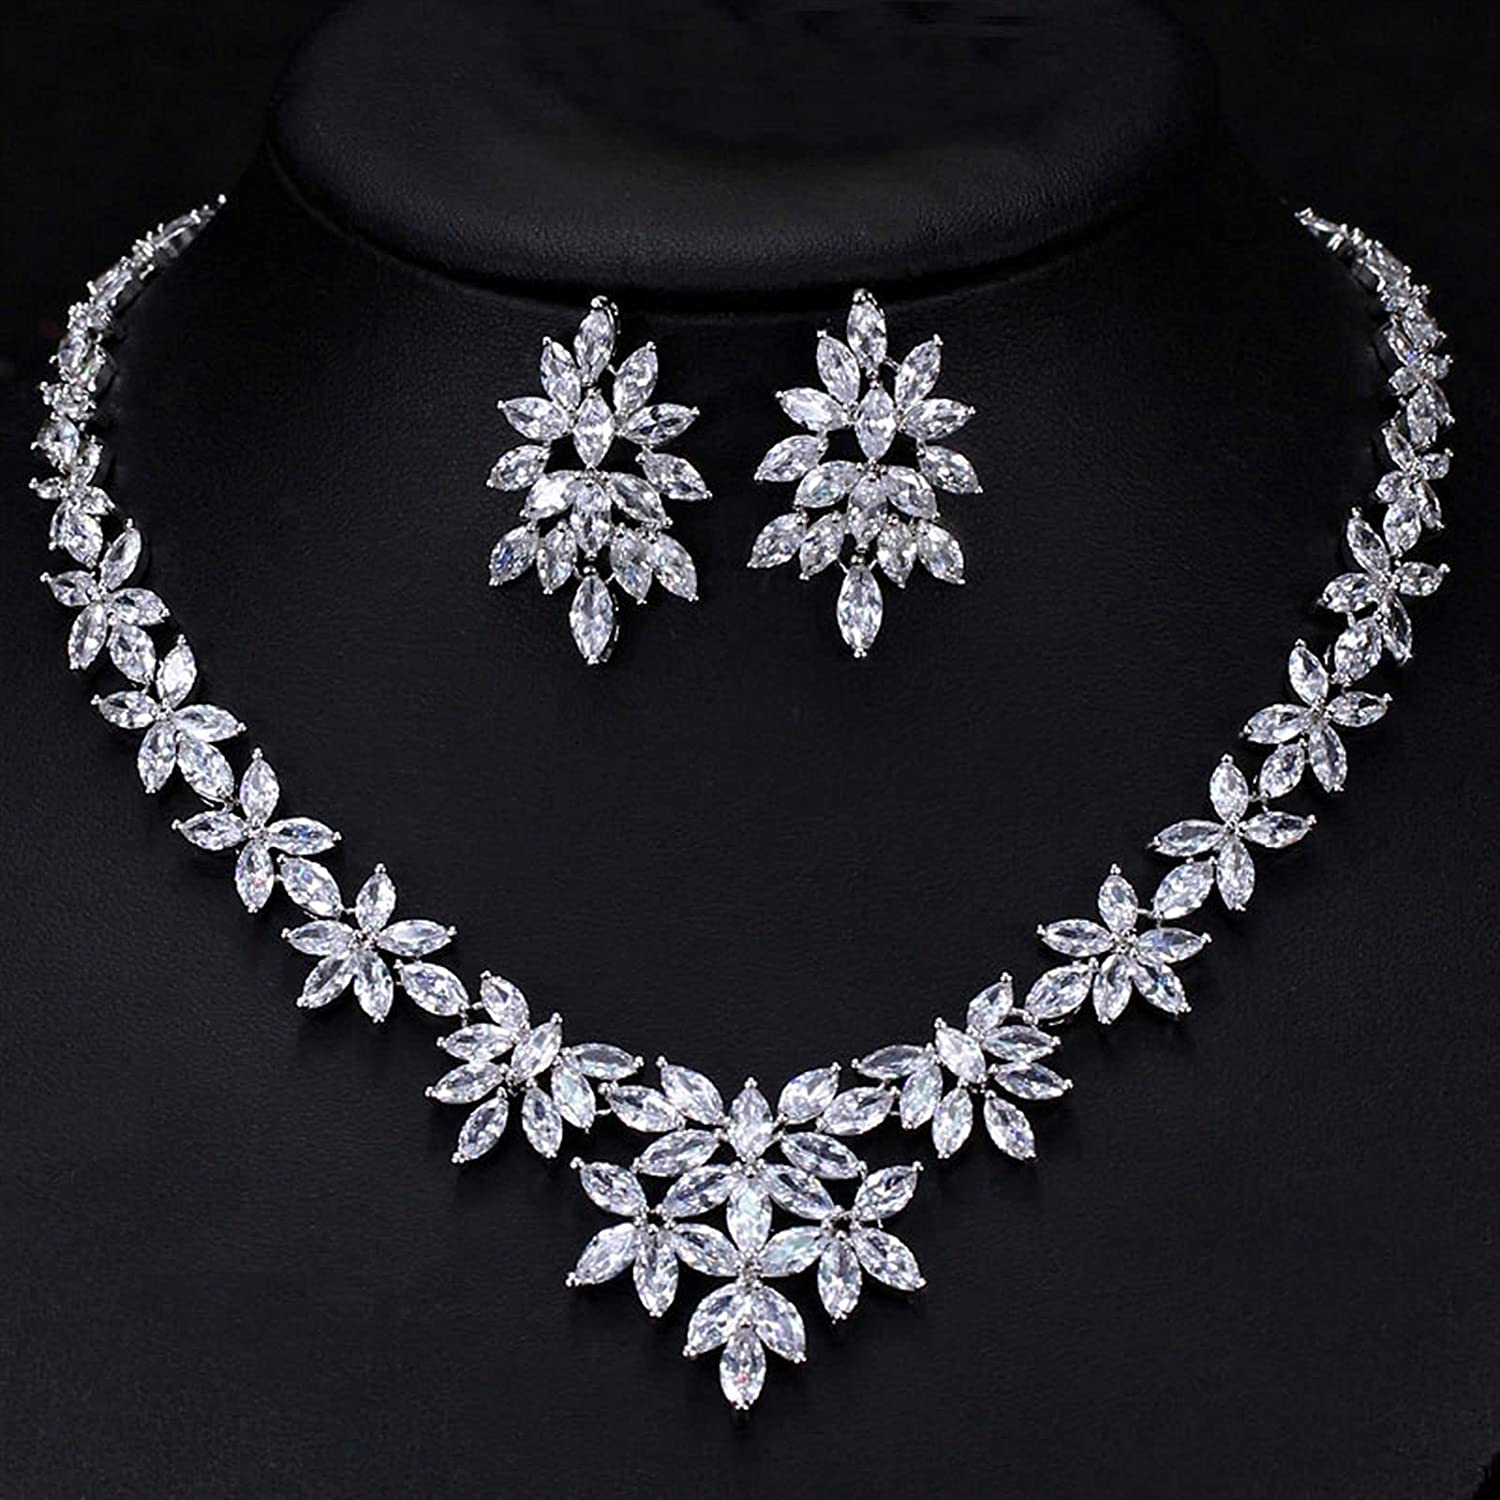 SYXMSM Jewellery Limited time for free shipping Set Ranking TOP5 Flower Women Wedding Zirconia Cubic Crystal